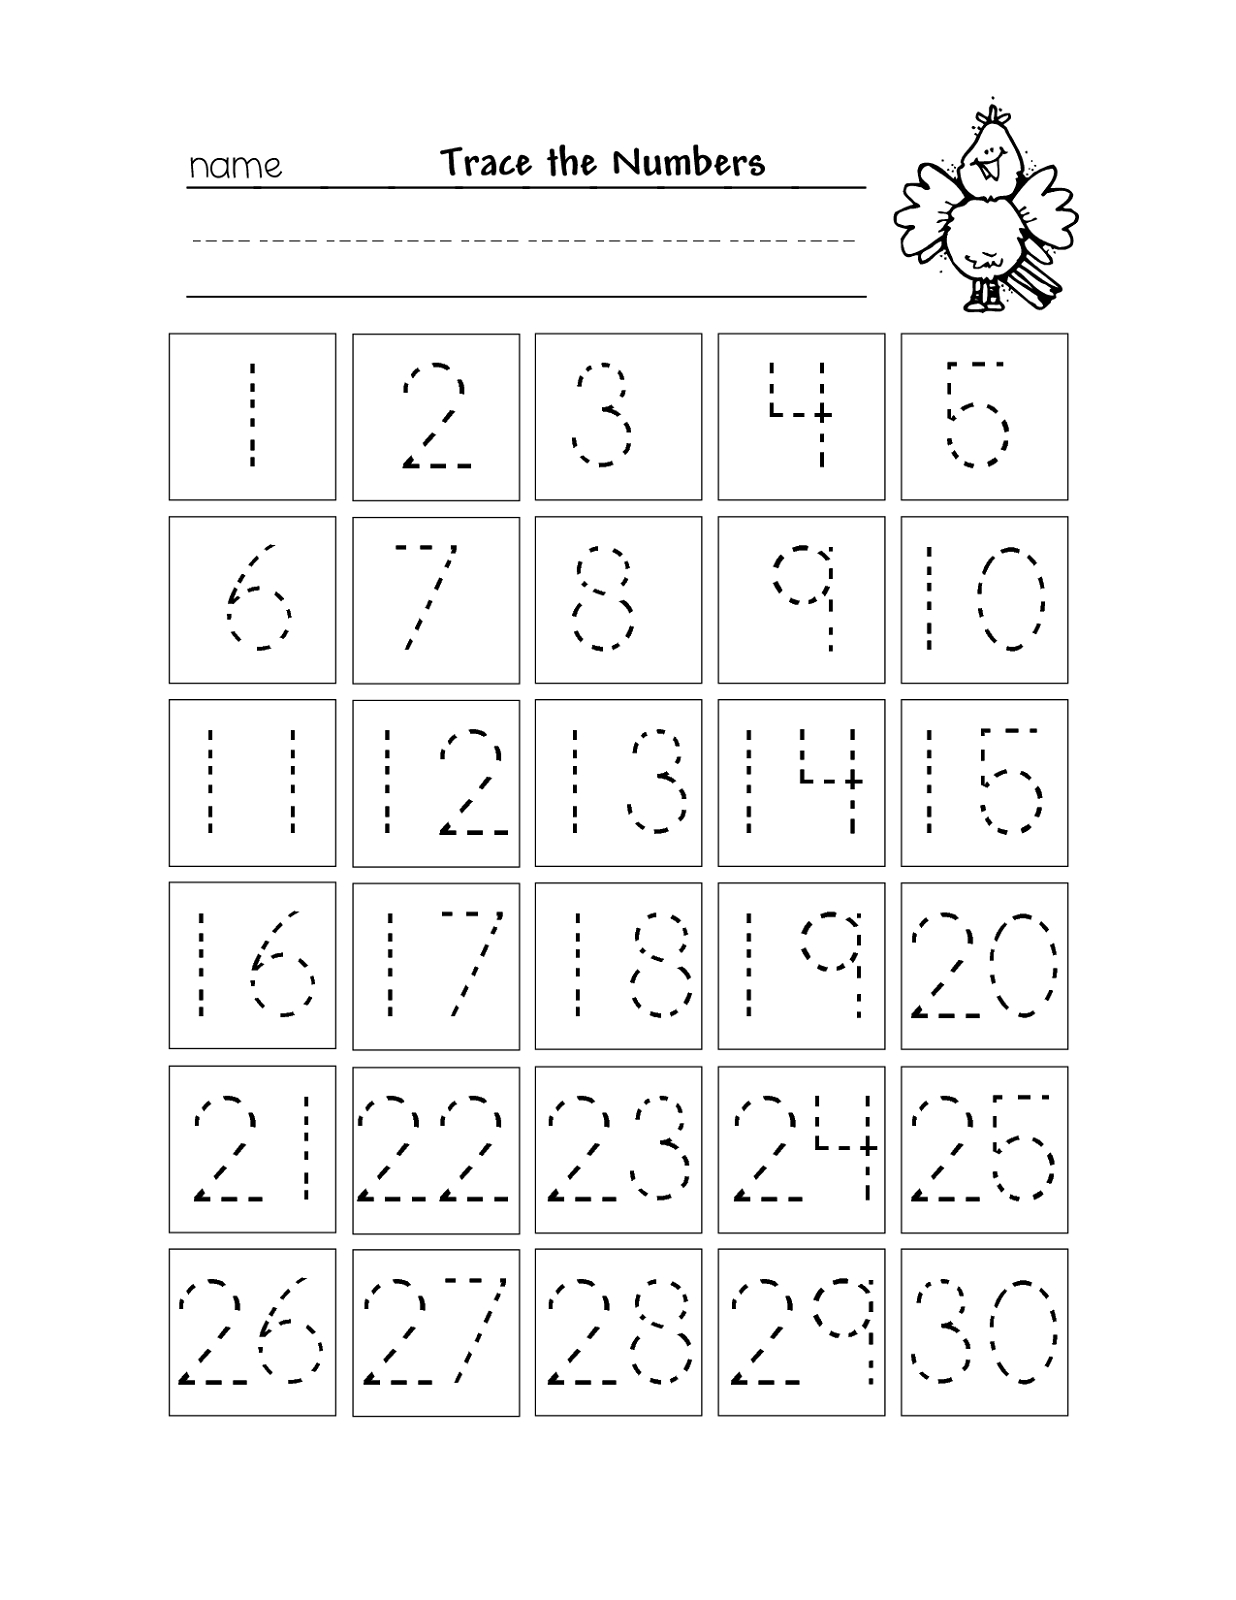 Free Printable Number Chart 1-30 | Kinder | Numbers Preschool - Free Printable Number Chart 1 10